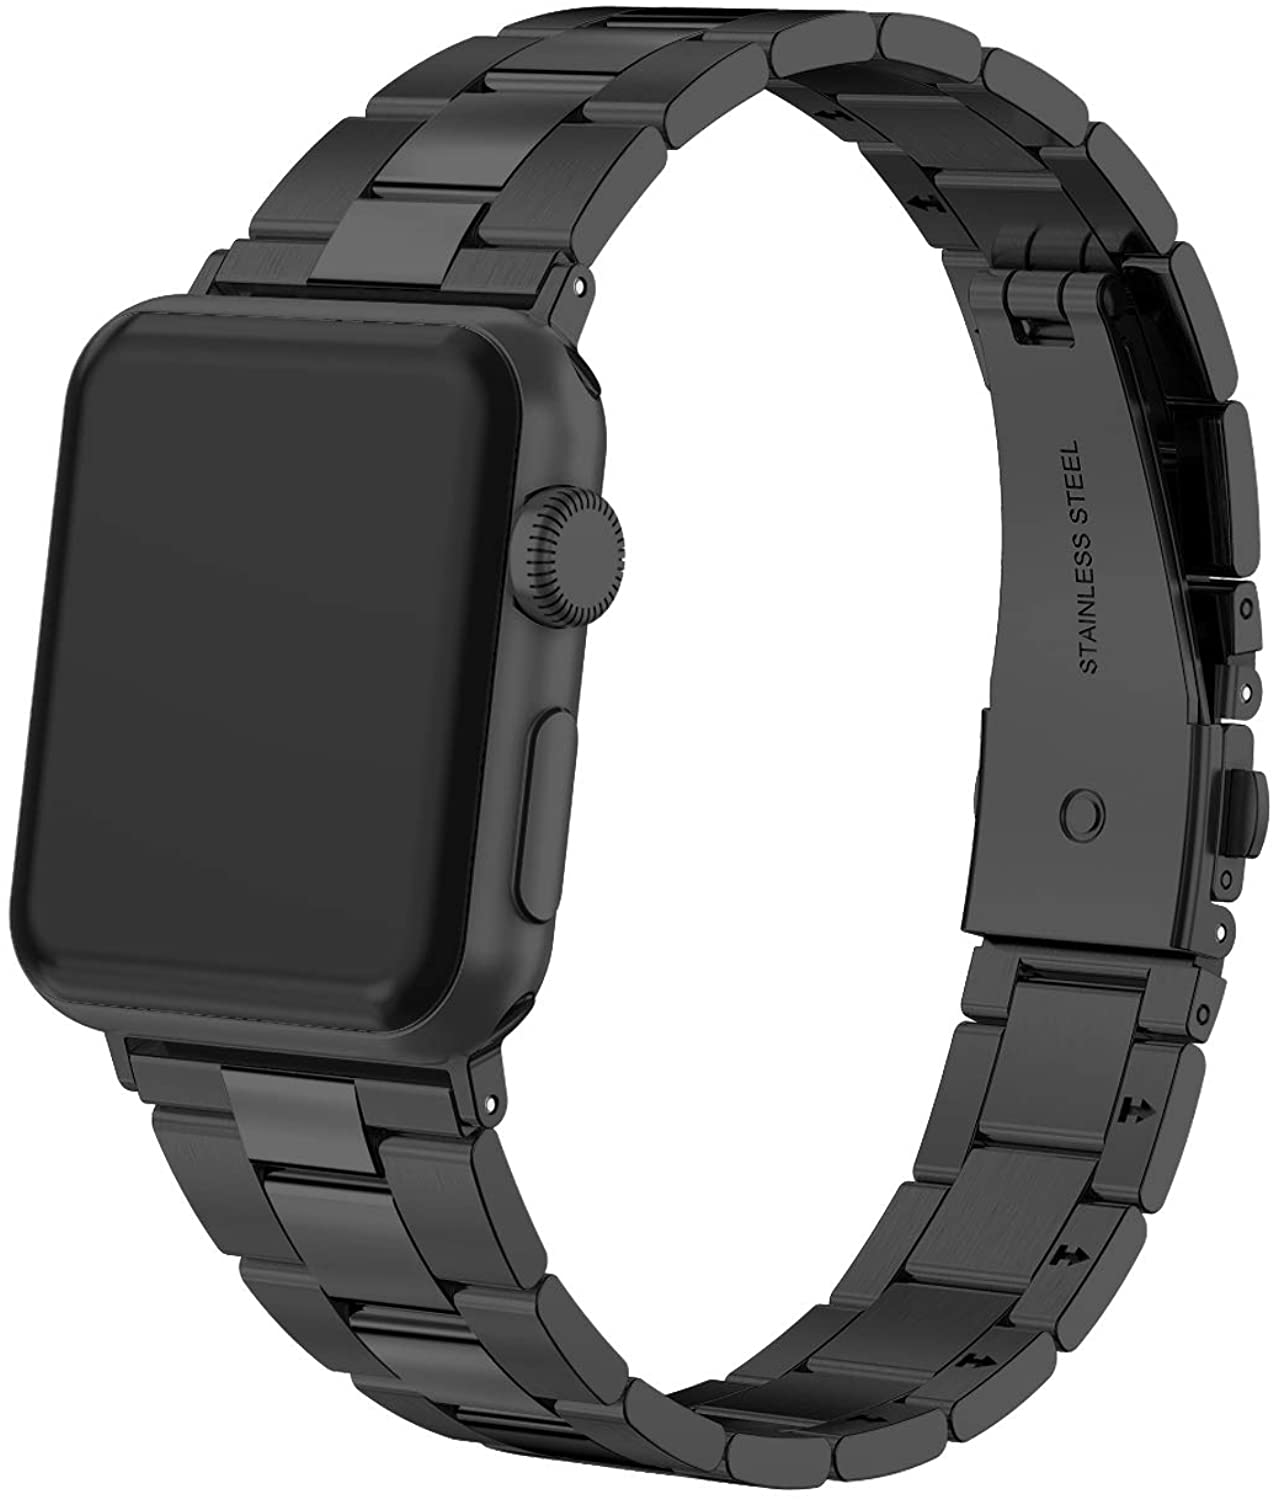 AILONS Compatible for Iwatch Band 38mm 40mm 42mm 44mm, Band Wristband Loop Replacement Band for Iwatch Series 5/4/3/2/1